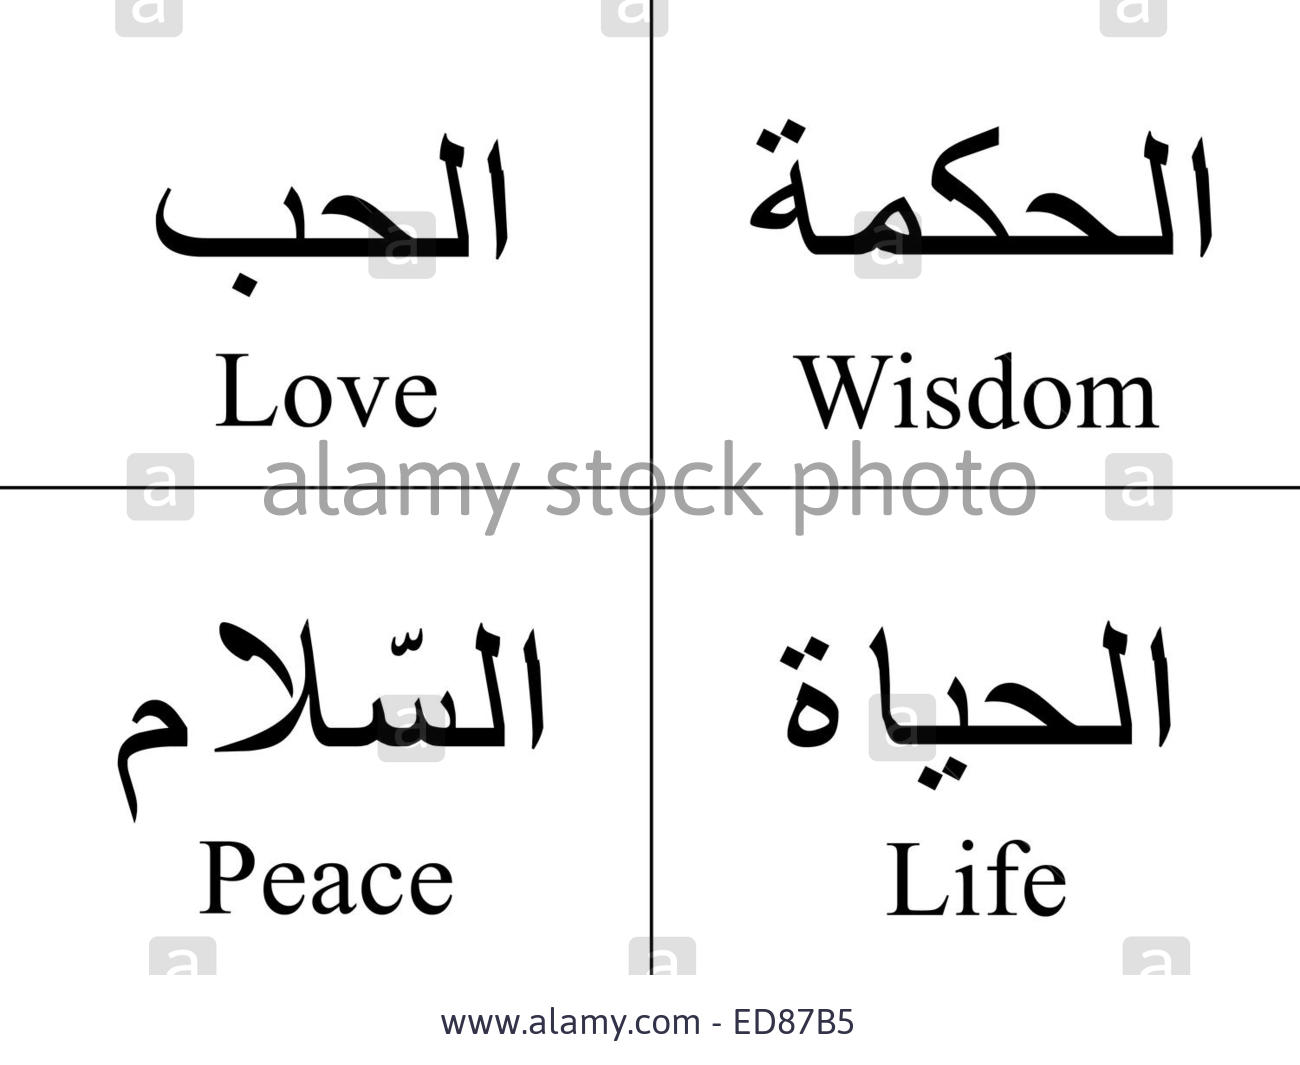 Life Quotes In Arabic With English Translation Classy 15 Arabic Tattoos Designs And Meanings